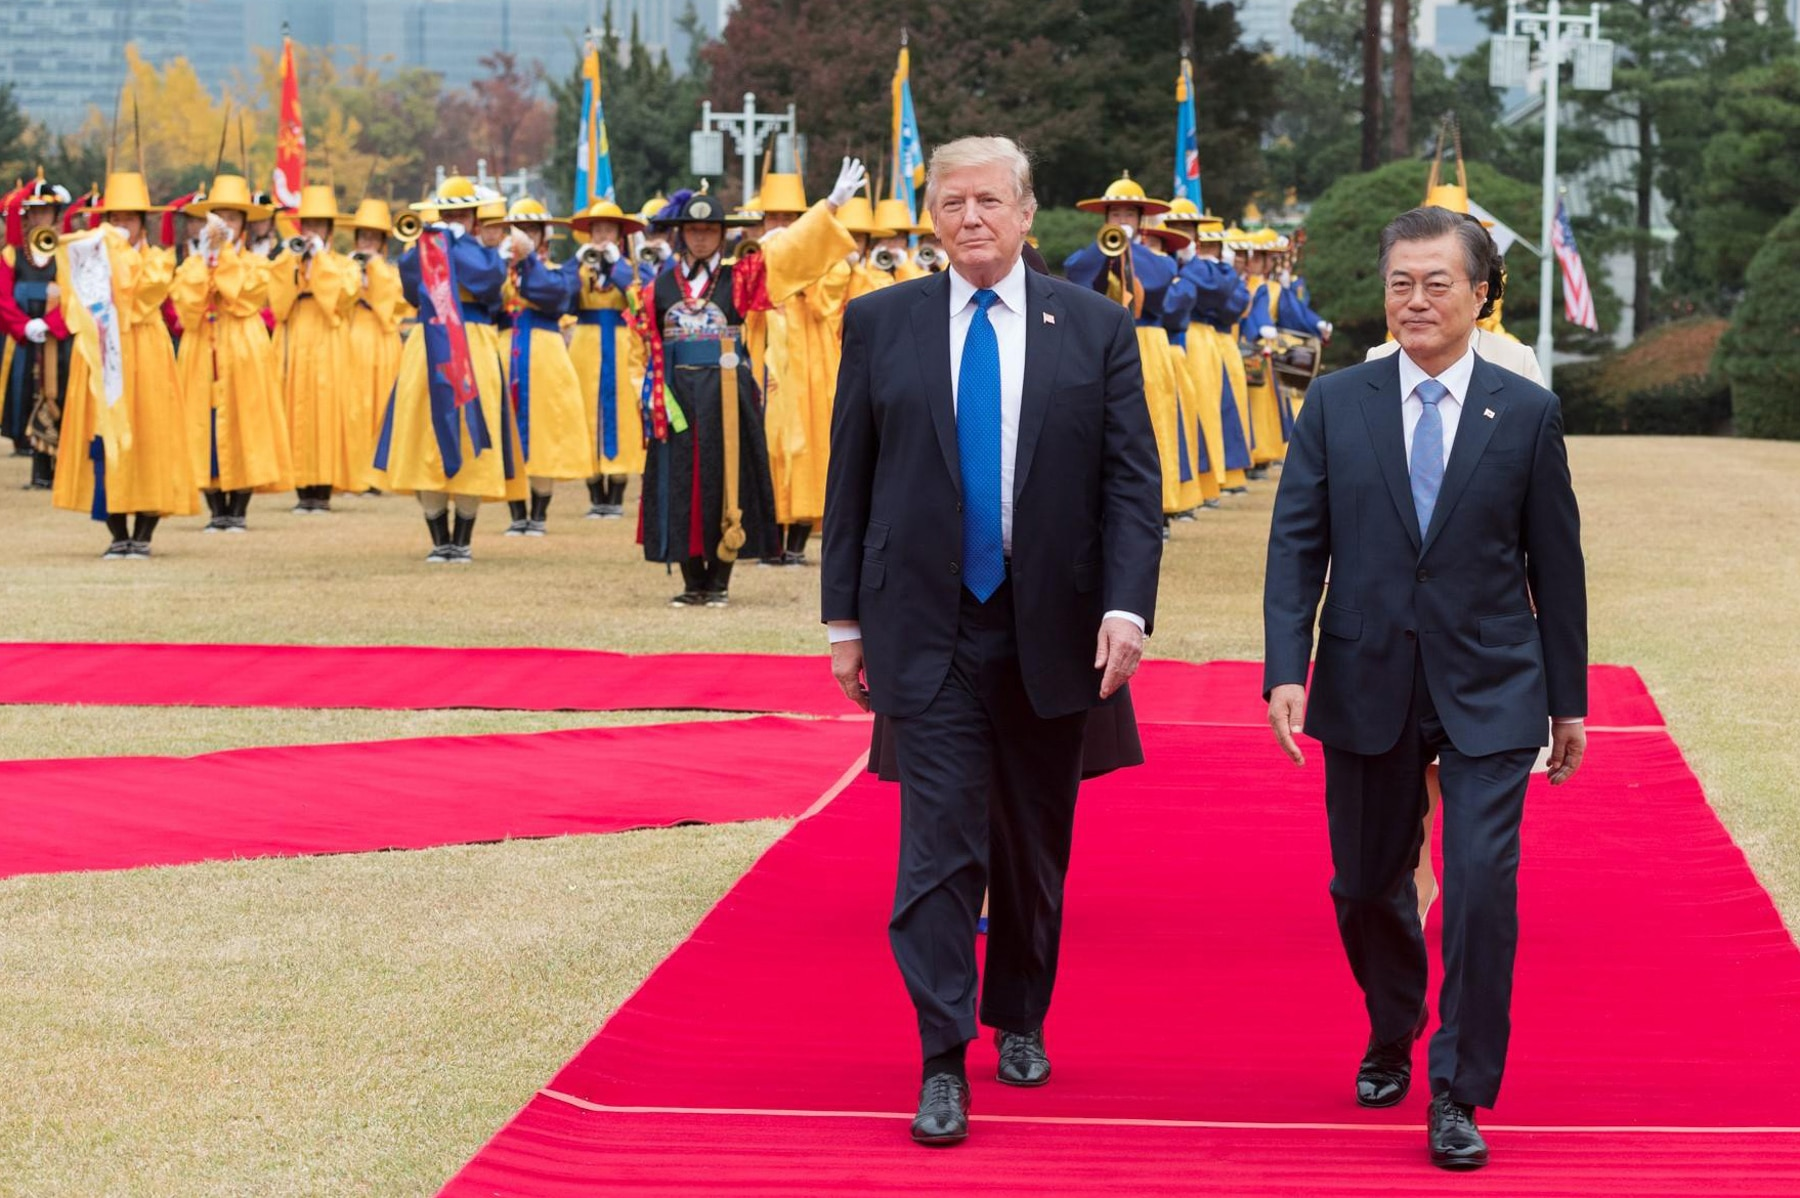 President Trump and President Moon Jae-in walking down red carpet framed between two flags (The White House)